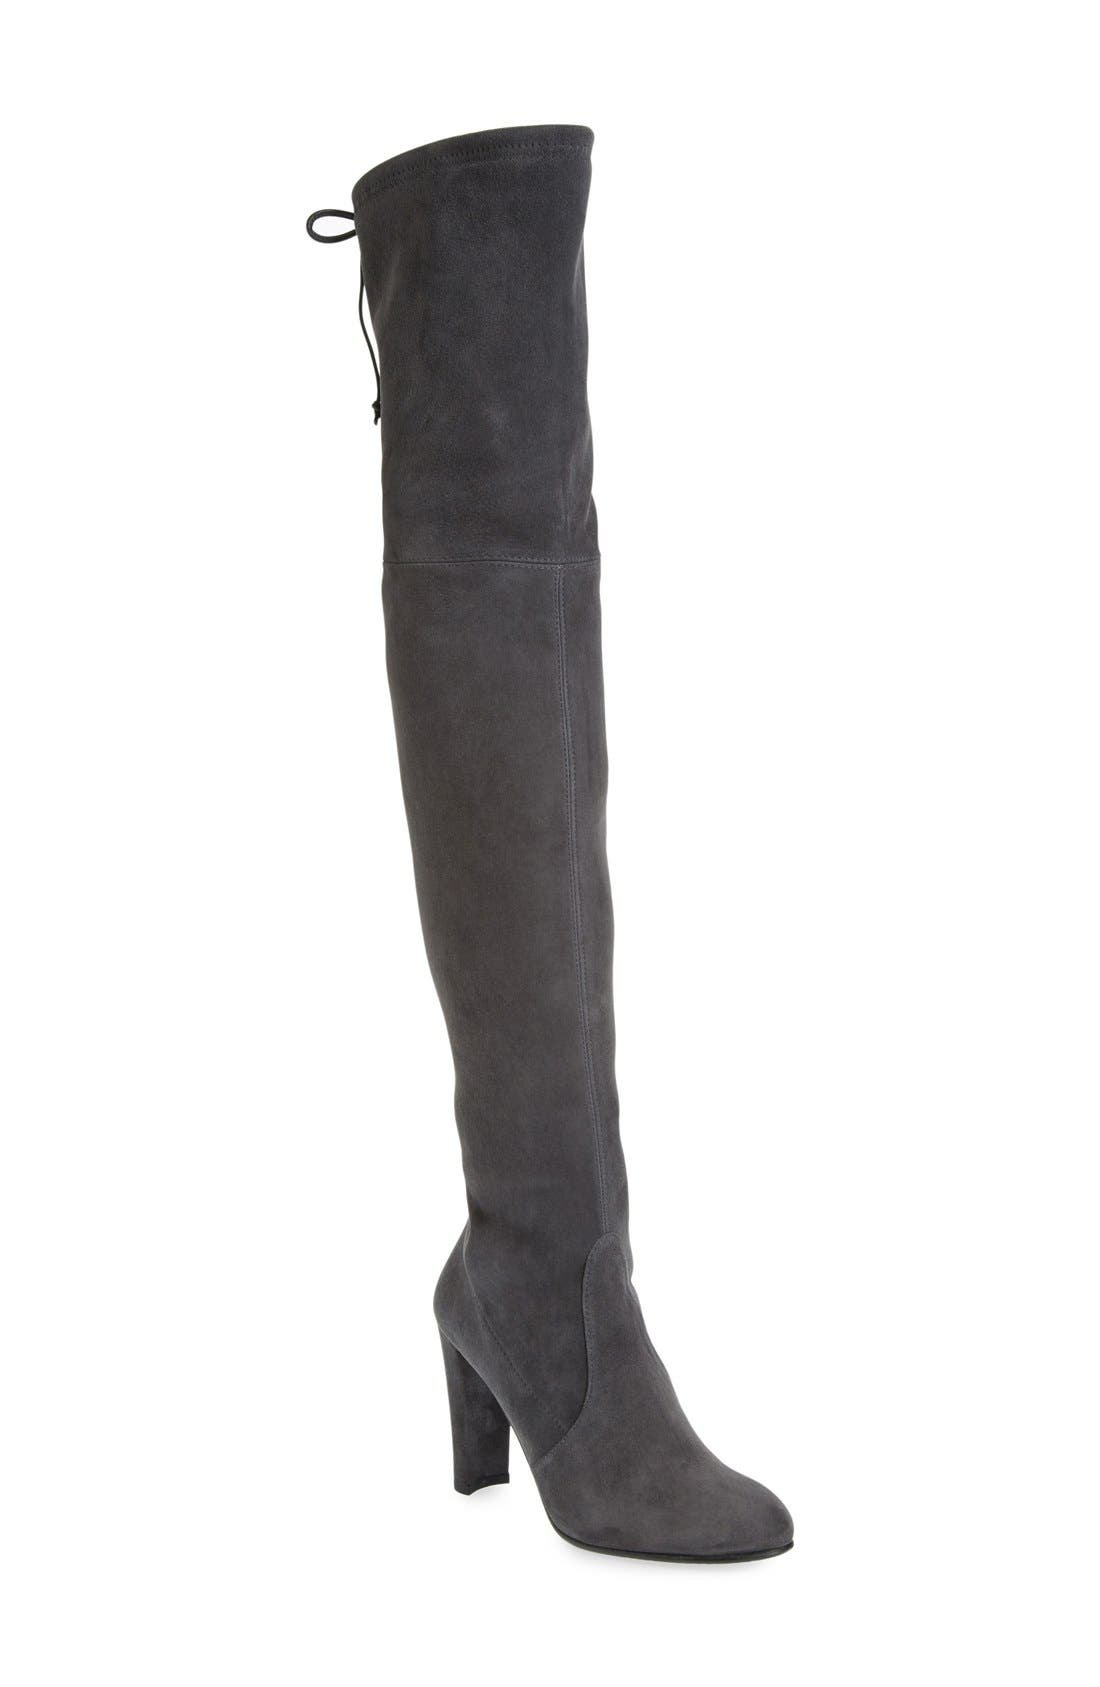 Women's Grey Boots, Boots for Women | Nordstrom